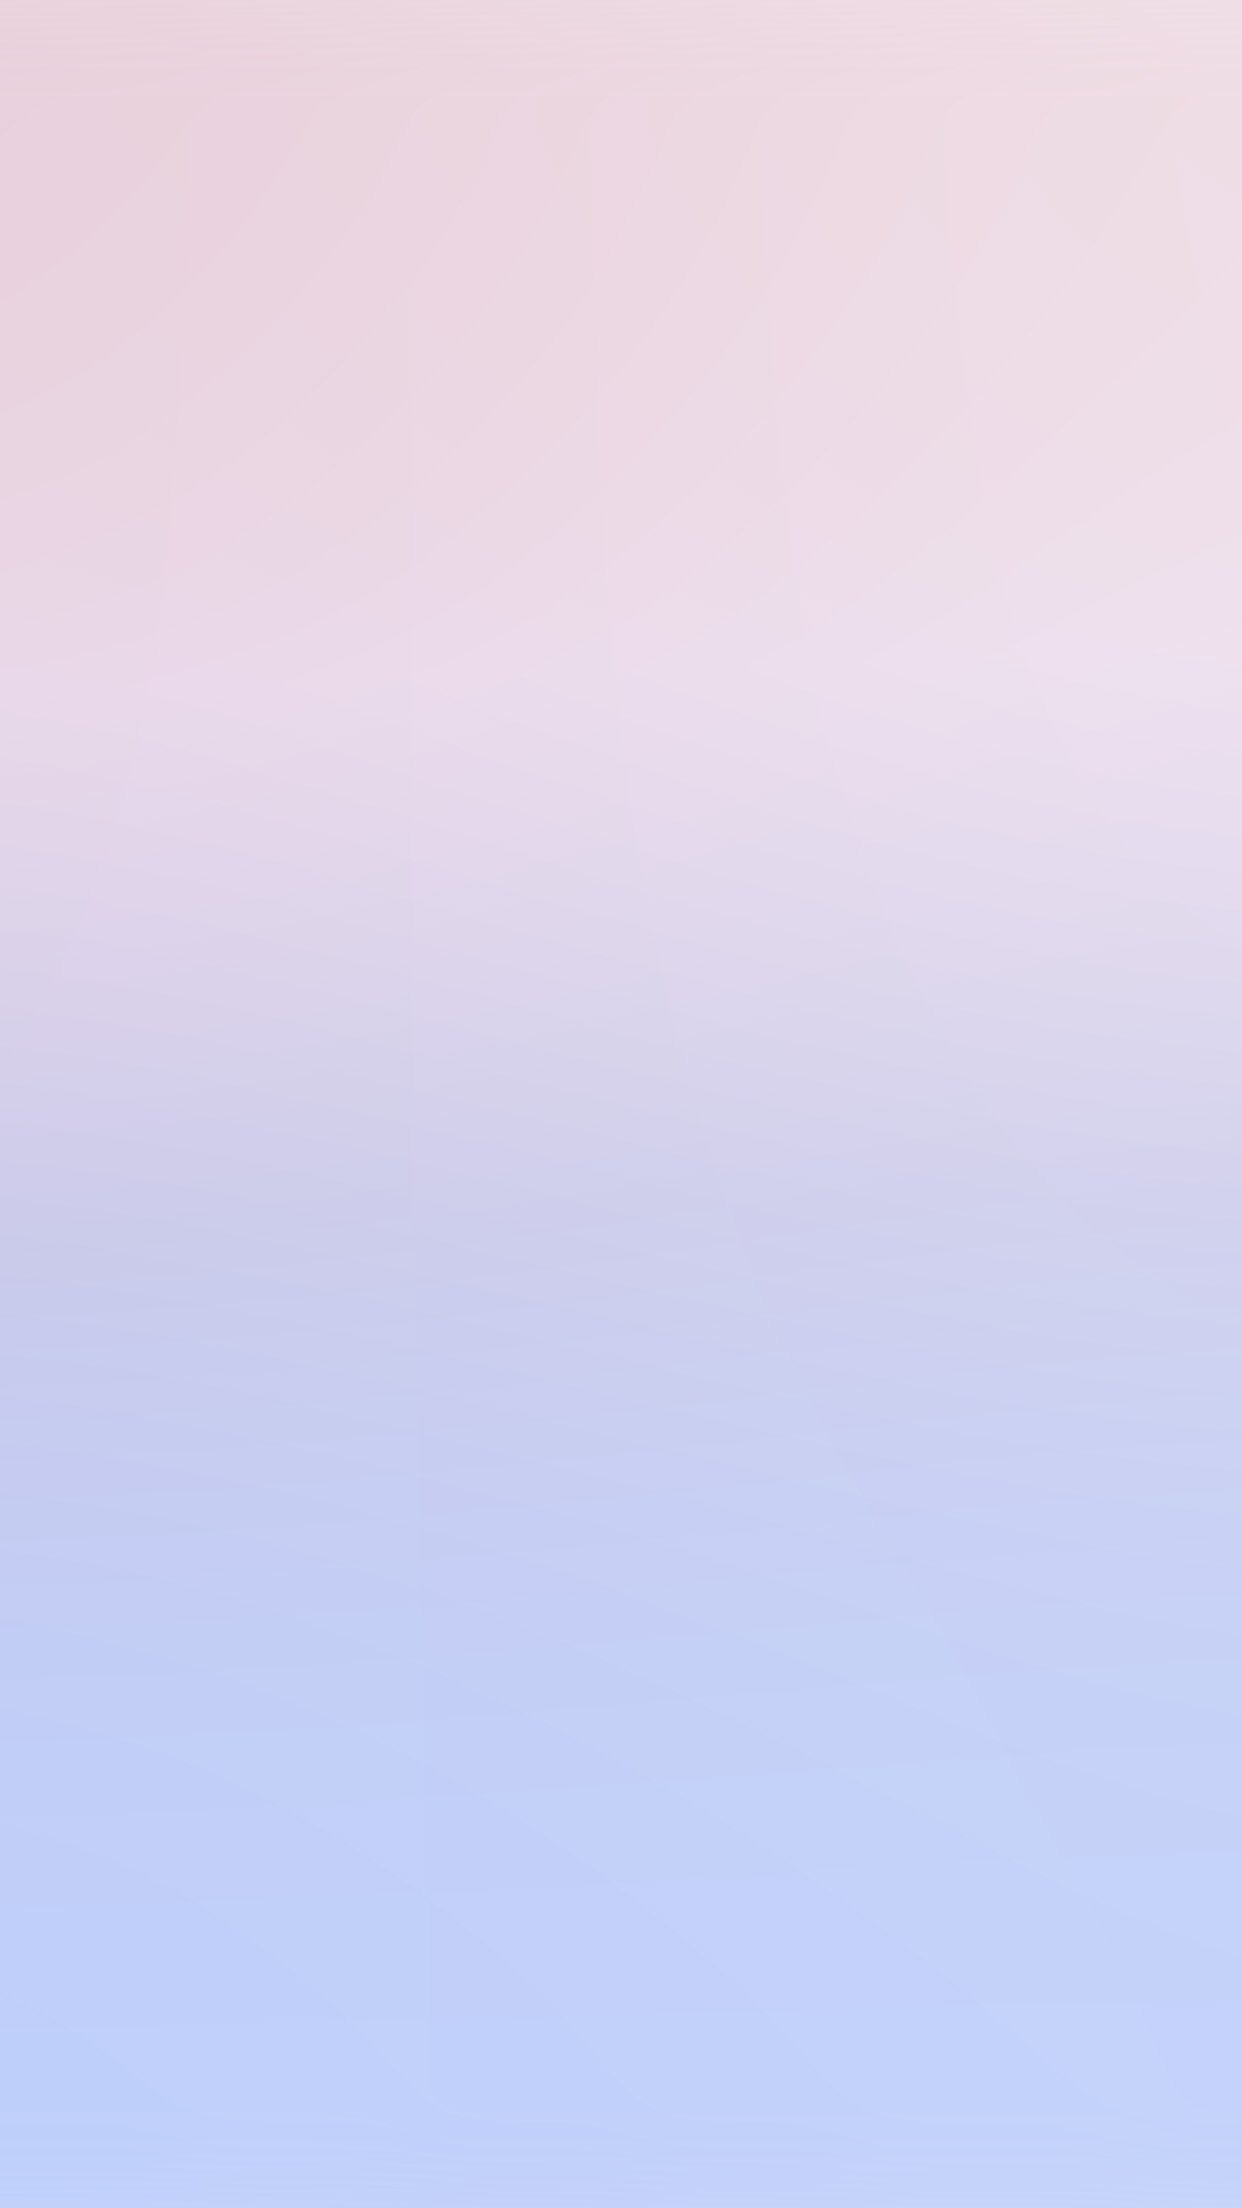 Cute Blue Pastel Wallpapers Top Free Cute Blue Pastel Backgrounds